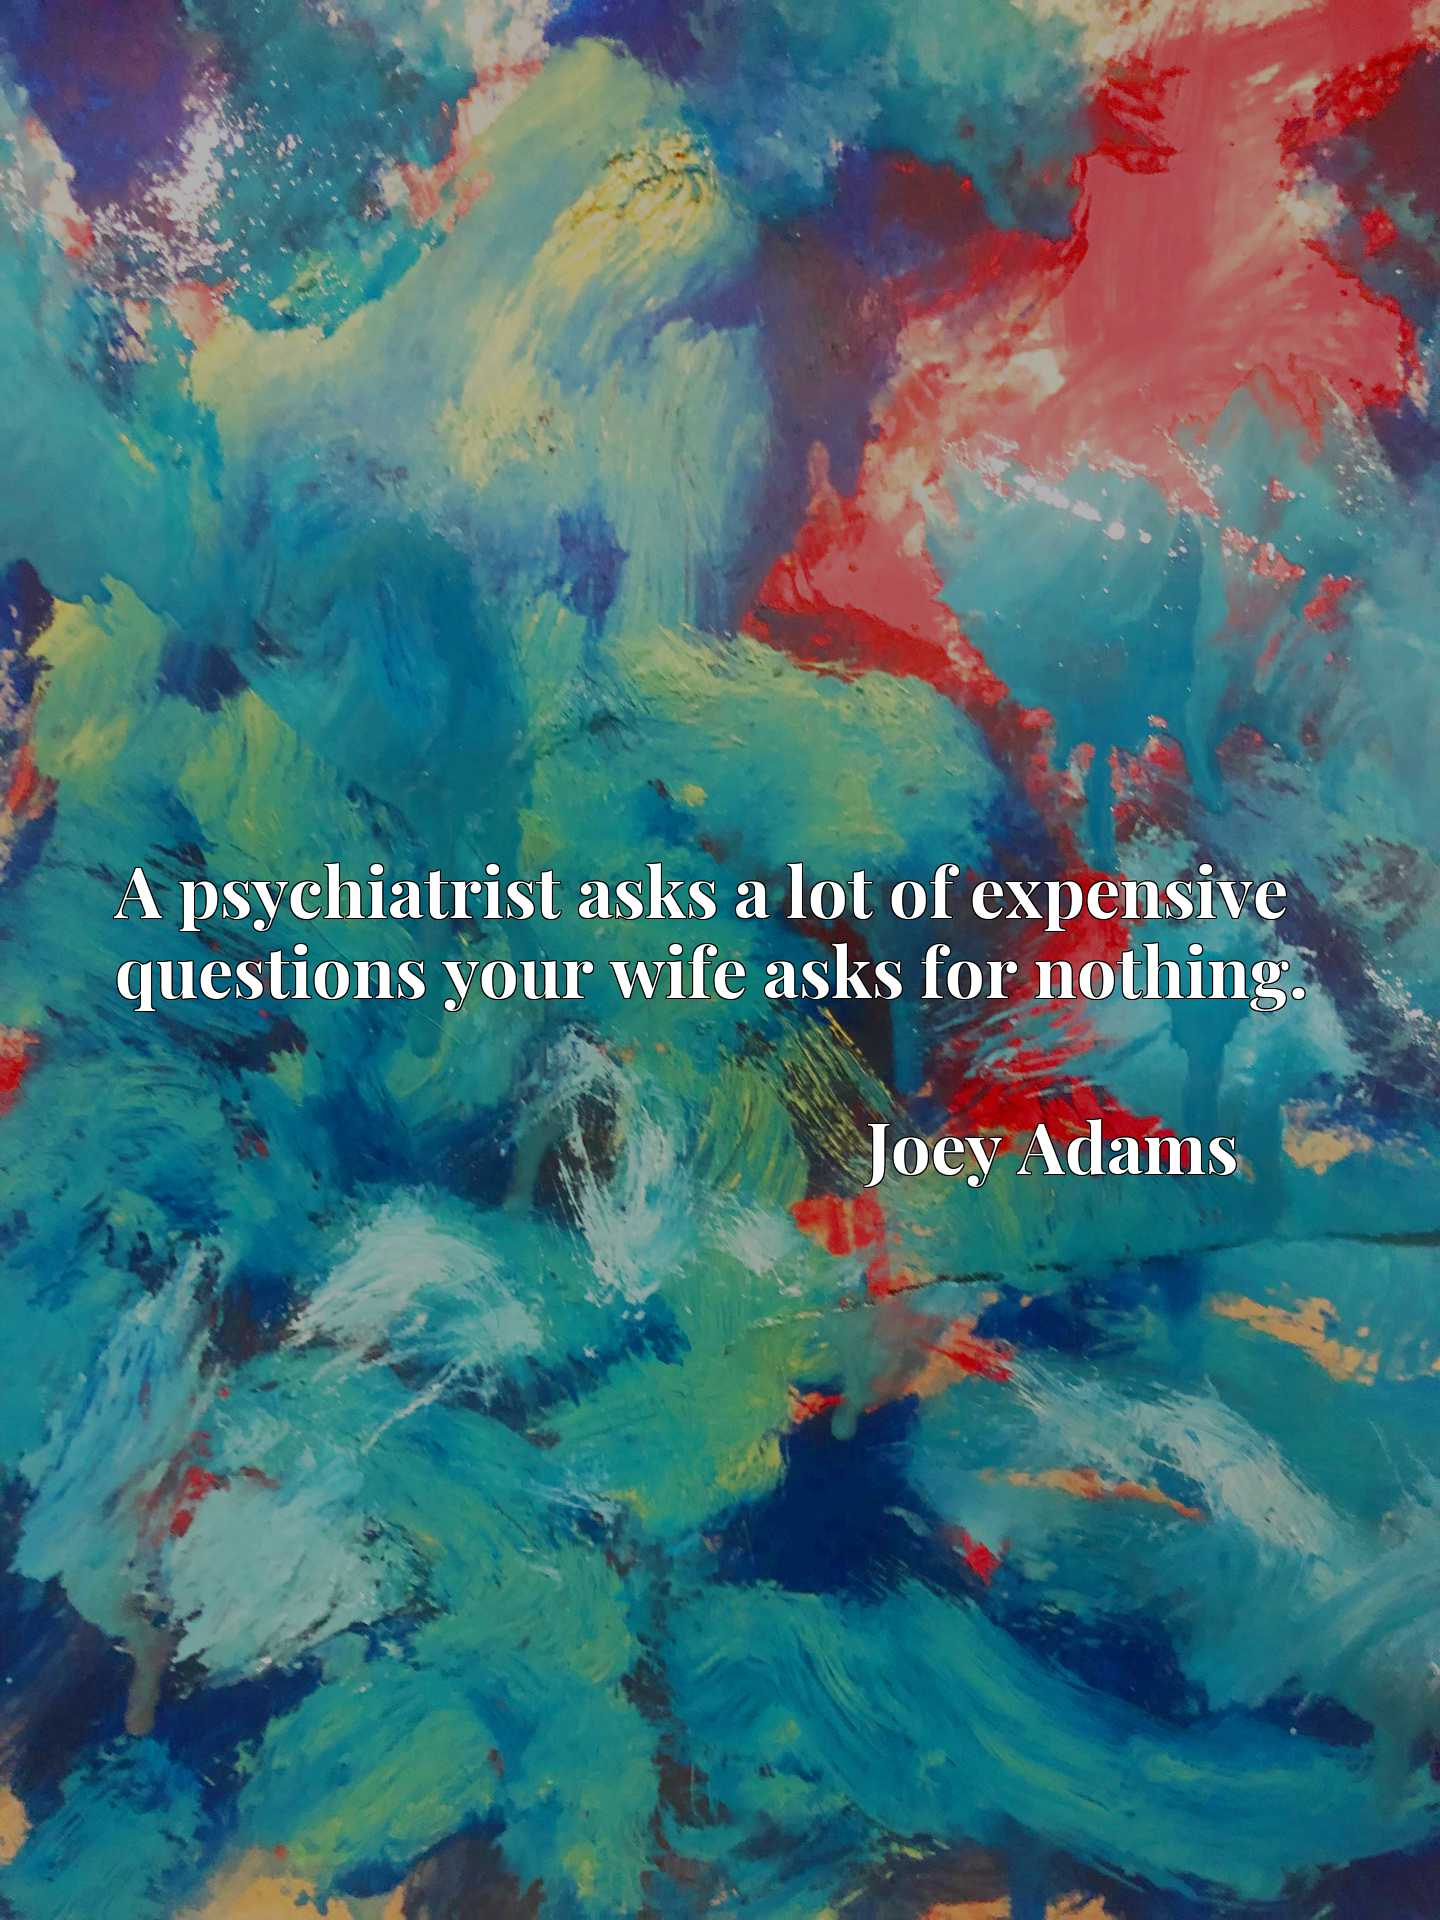 Quote Picture :A psychiatrist asks a lot of expensive questions your wife asks for nothing.